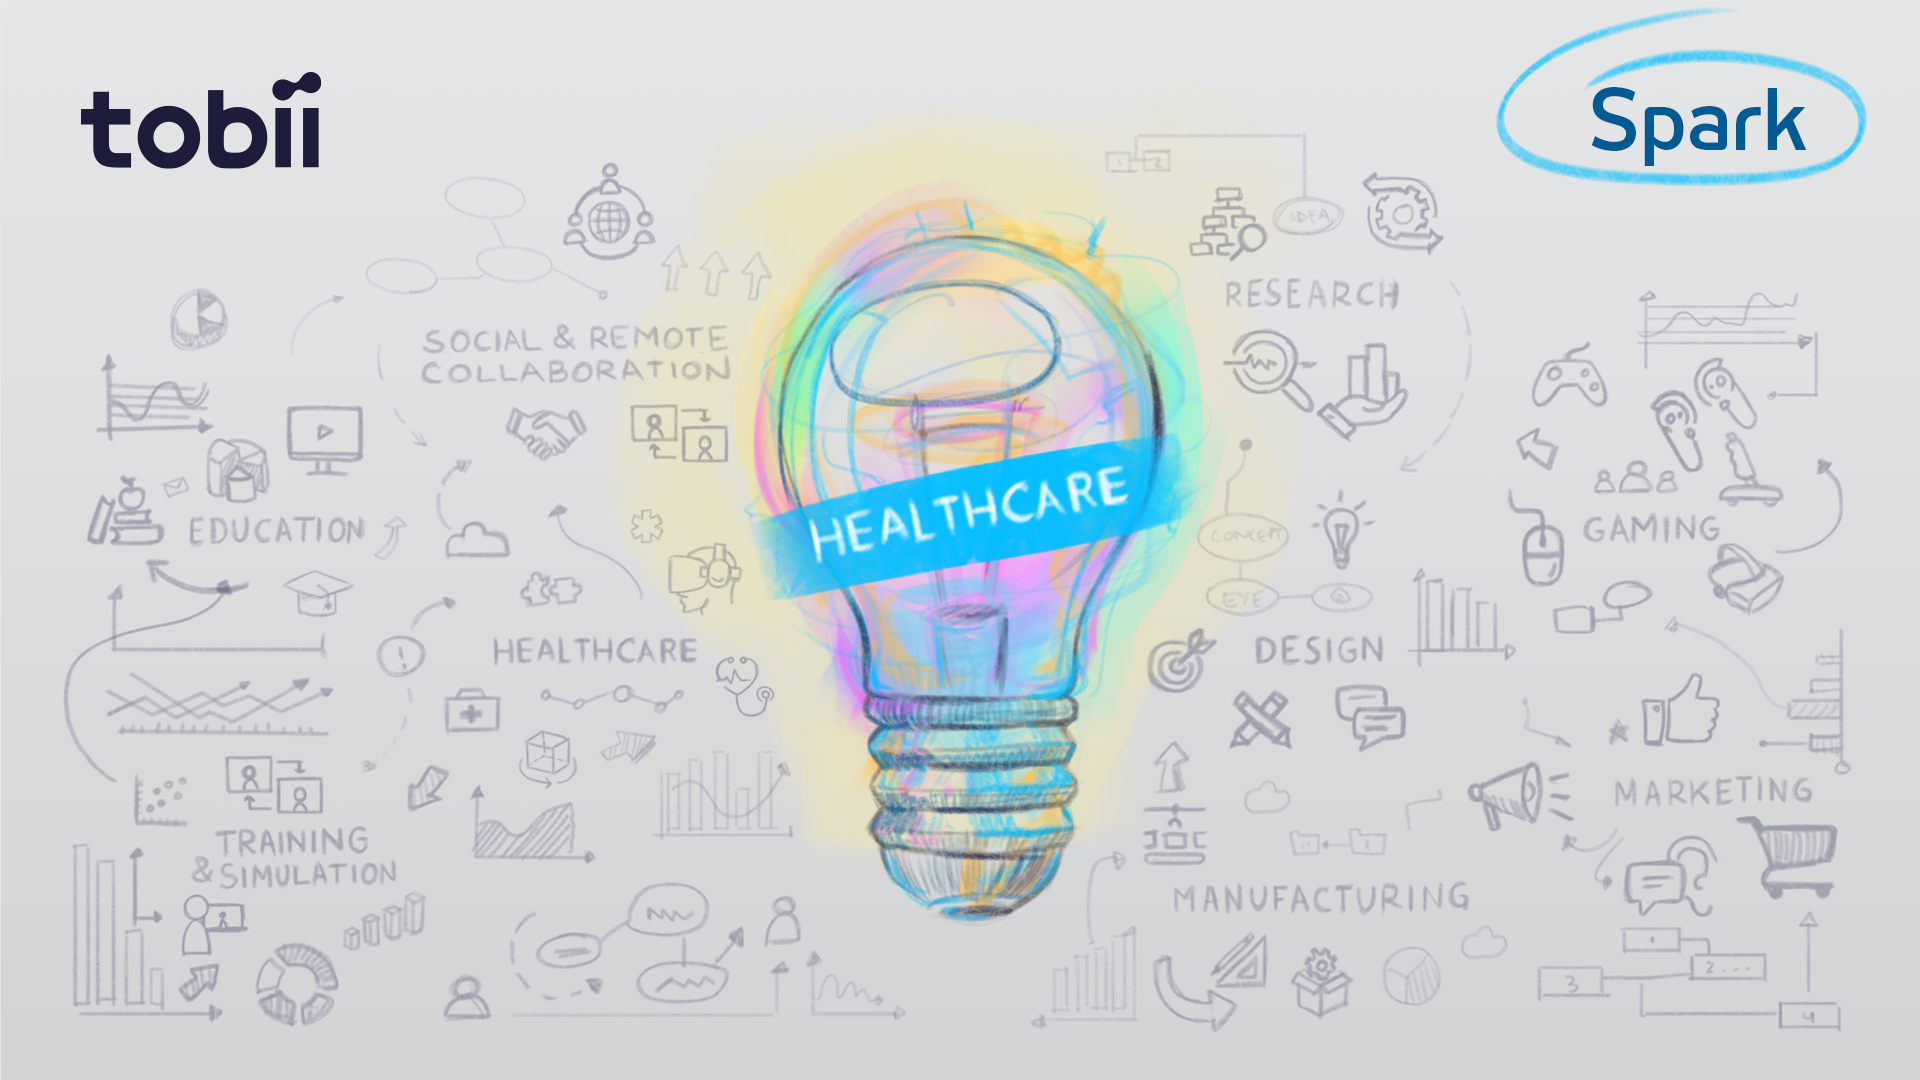 Using VR and eye tracking in healthcare applications